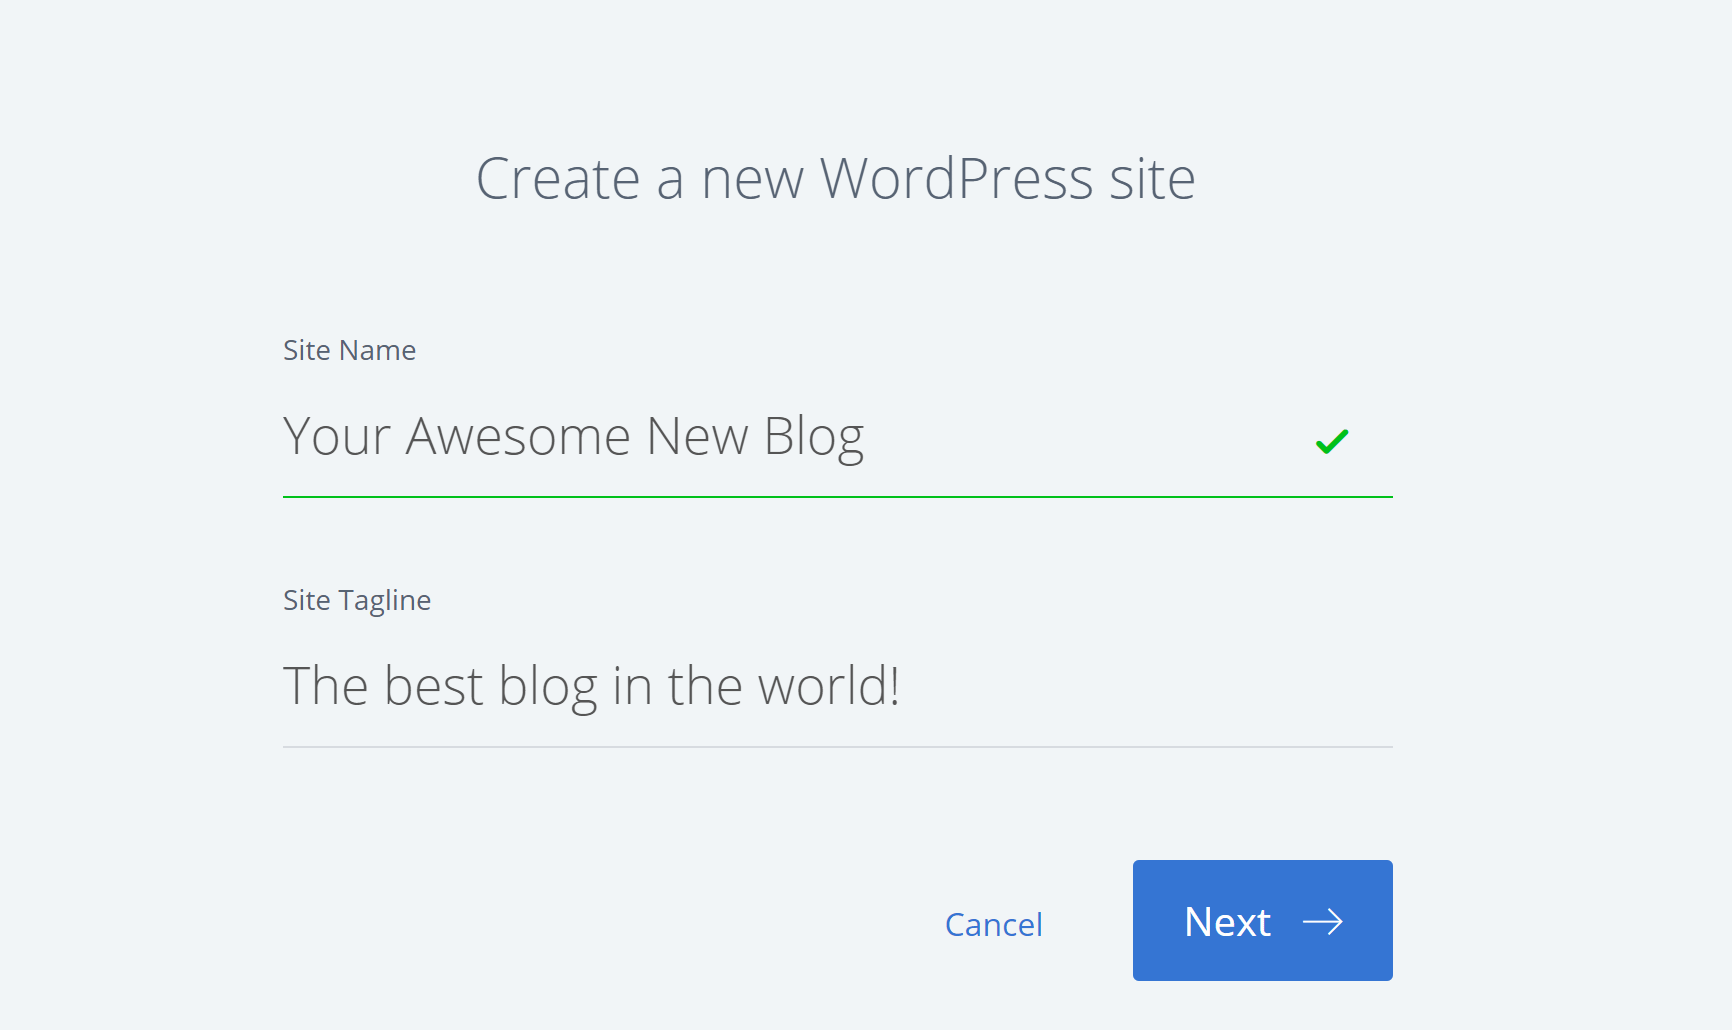 Enter details to create a WordPress blog